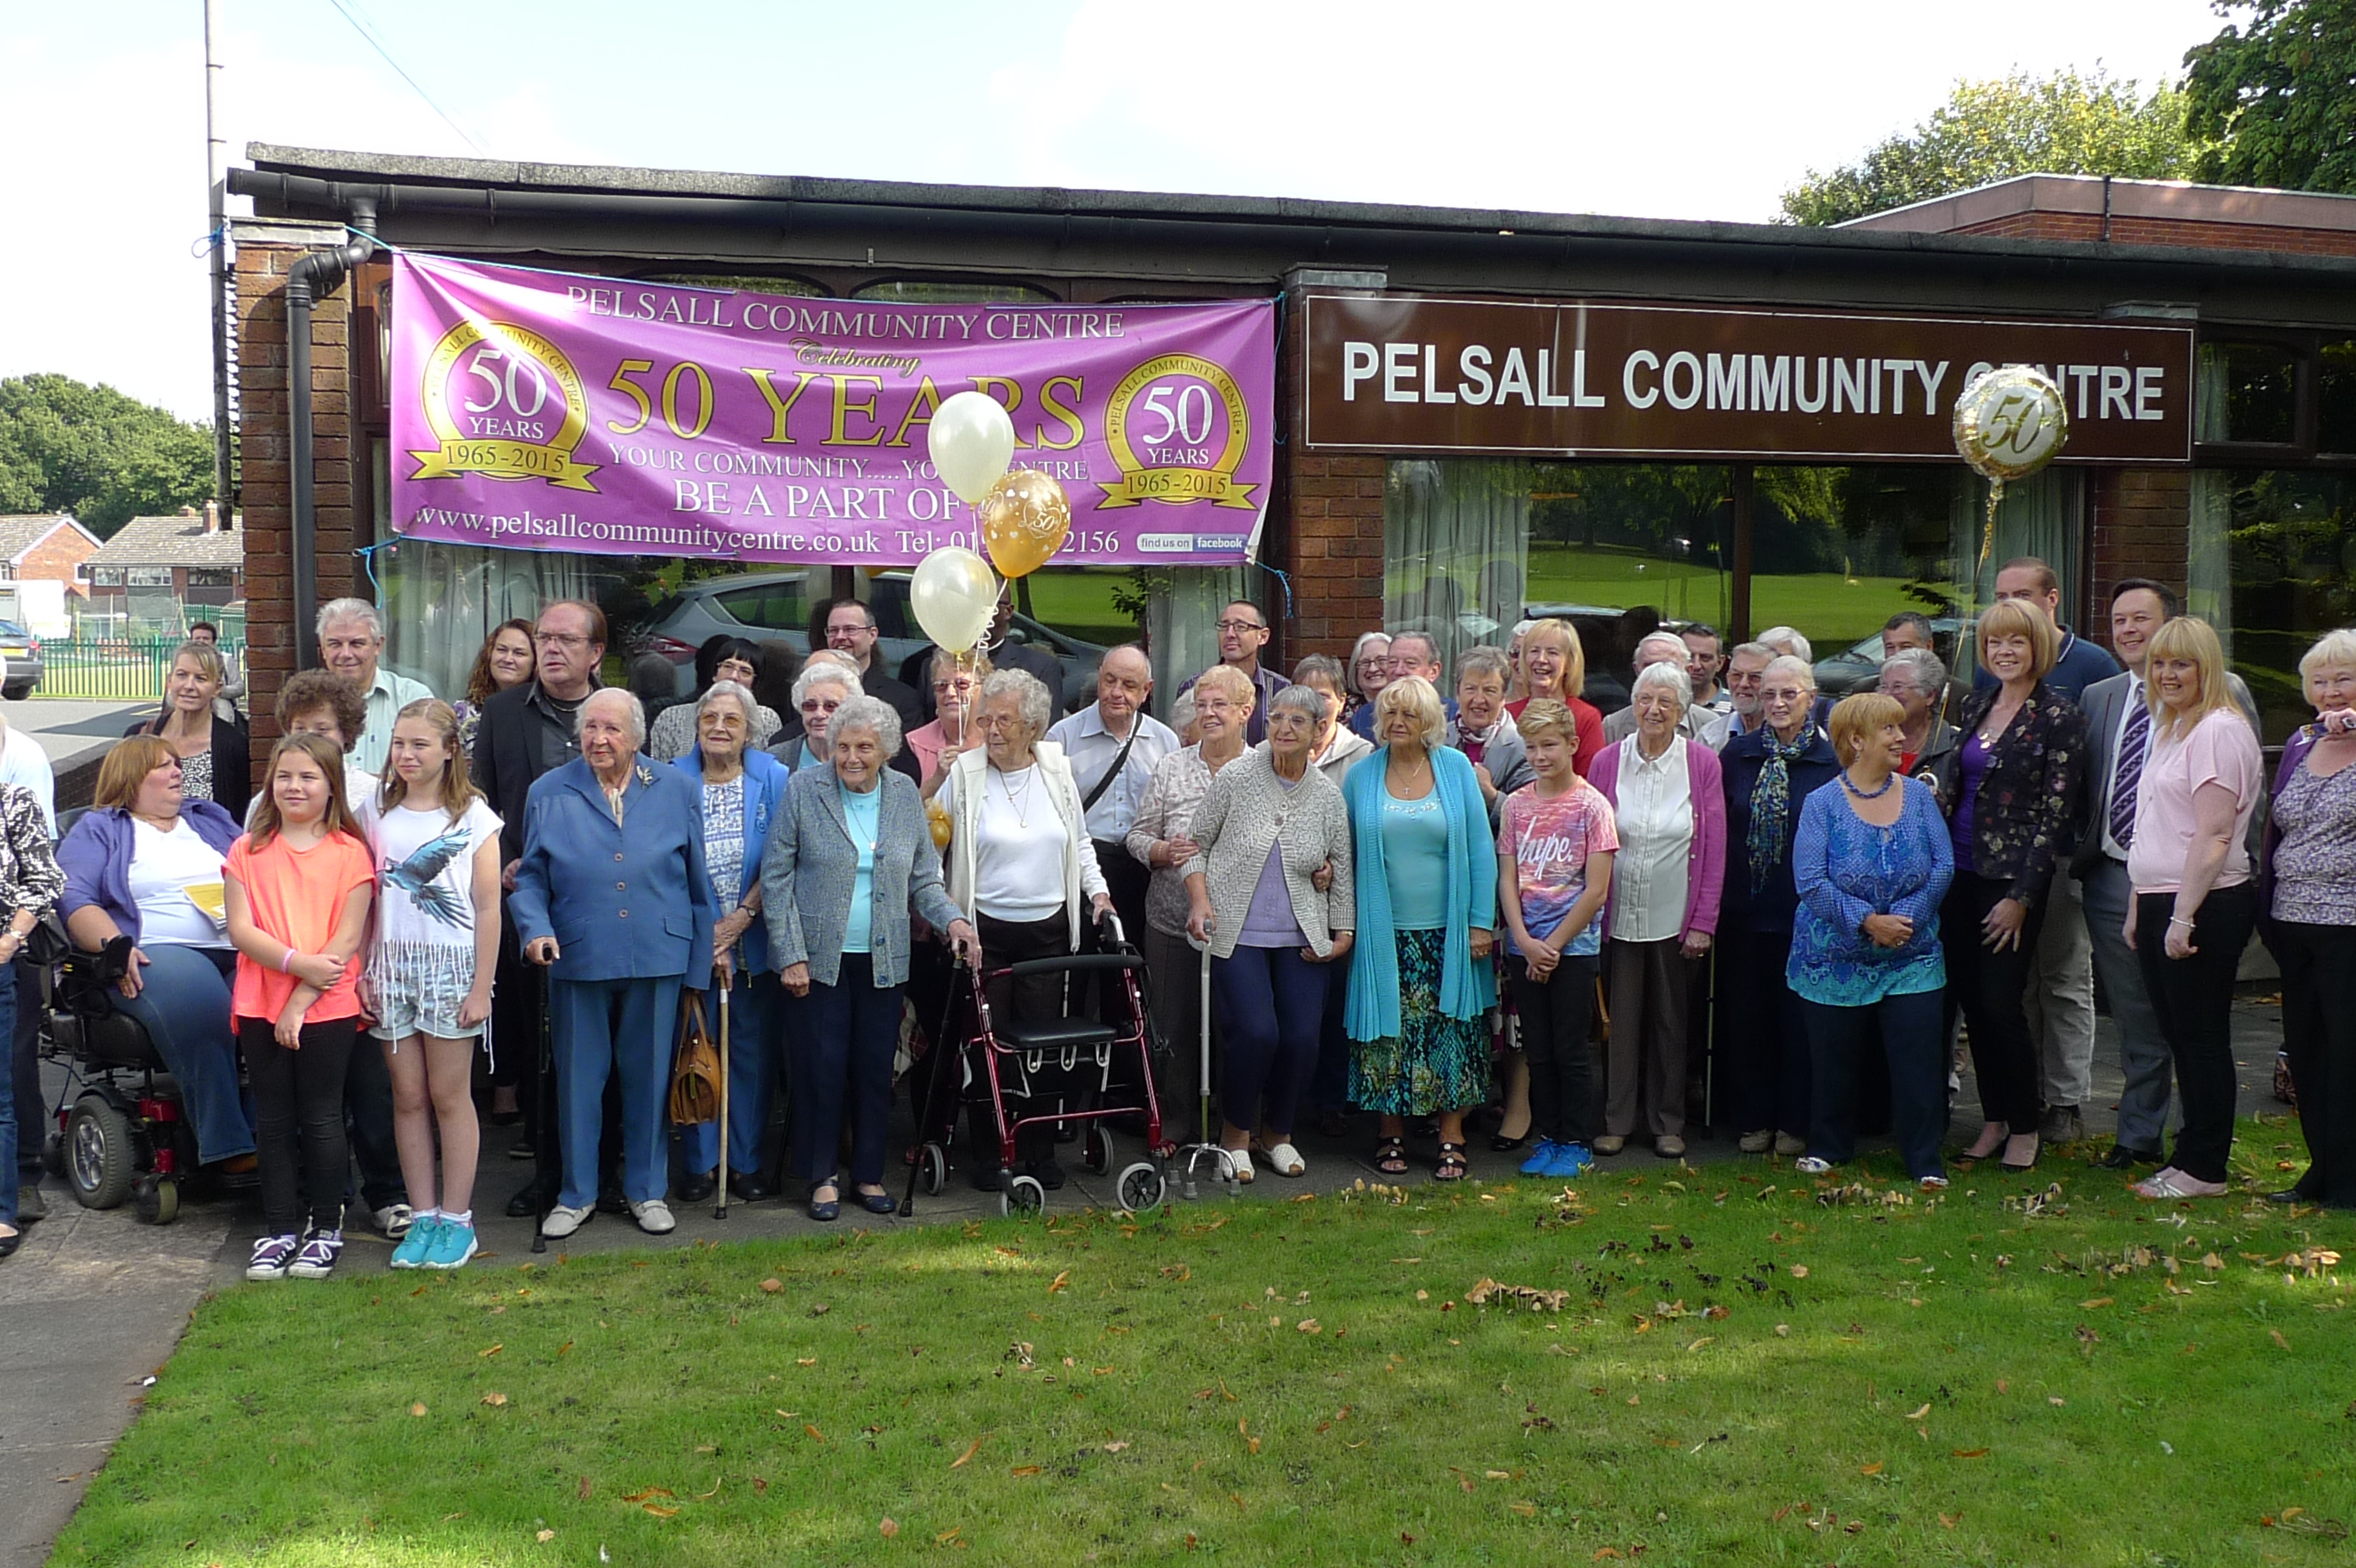 Pelsall Community Centre's Golden Anniversary